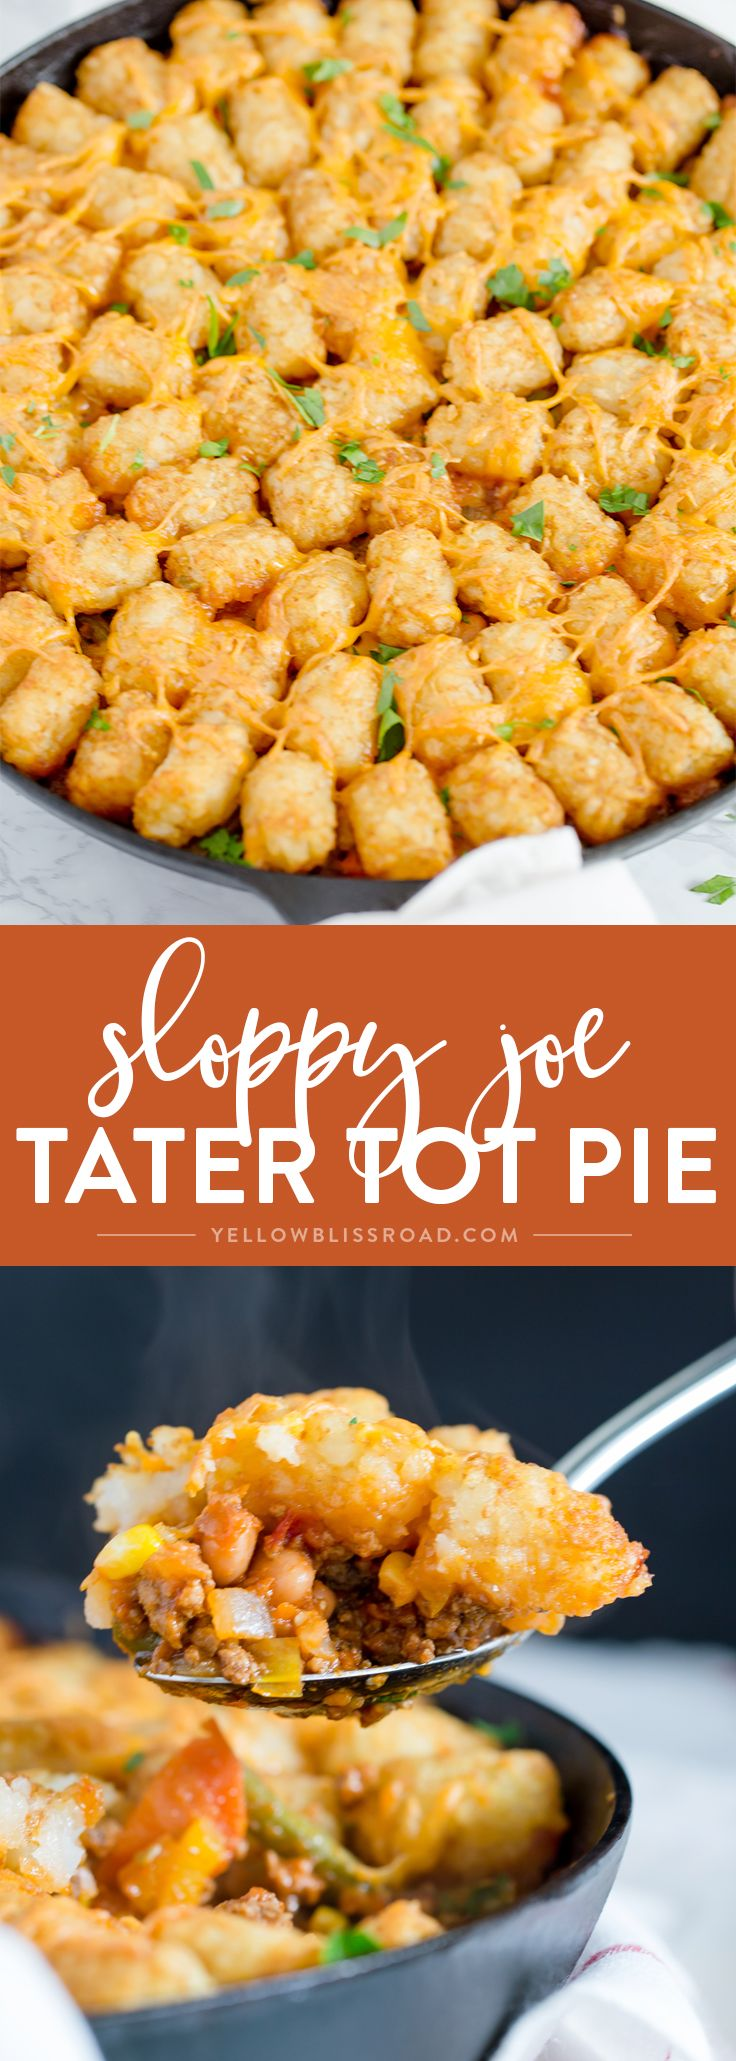 Sloppy Joe Tater Tot Pie is an easy one pan weeknight meal full of beef, veggies and a bold Manwich sauce, with a crispy tater tot crust.